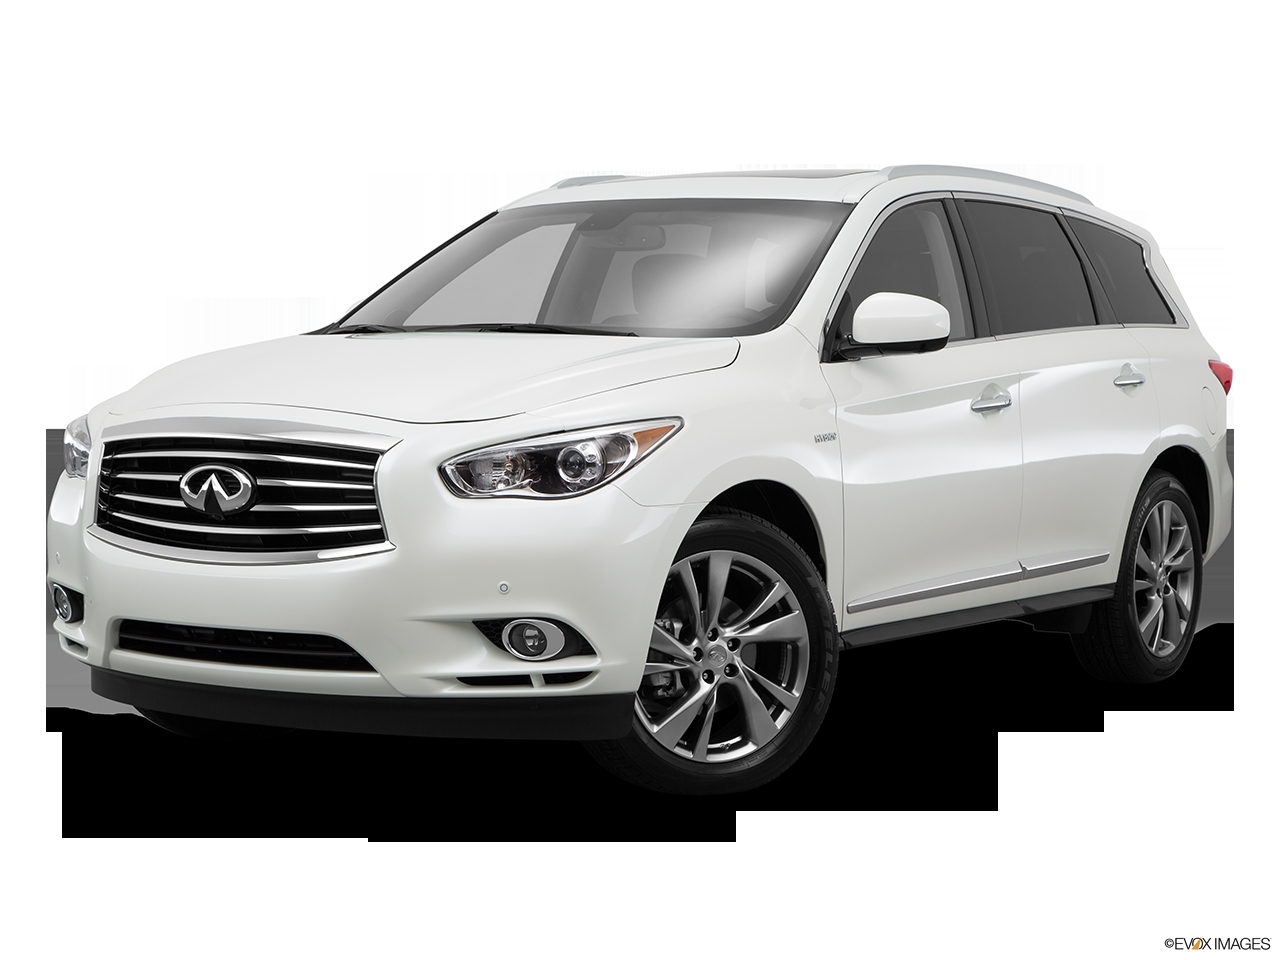 research and compare the 2015 infiniti qx60 and get msrp invoice infiniti qx60 invoice price